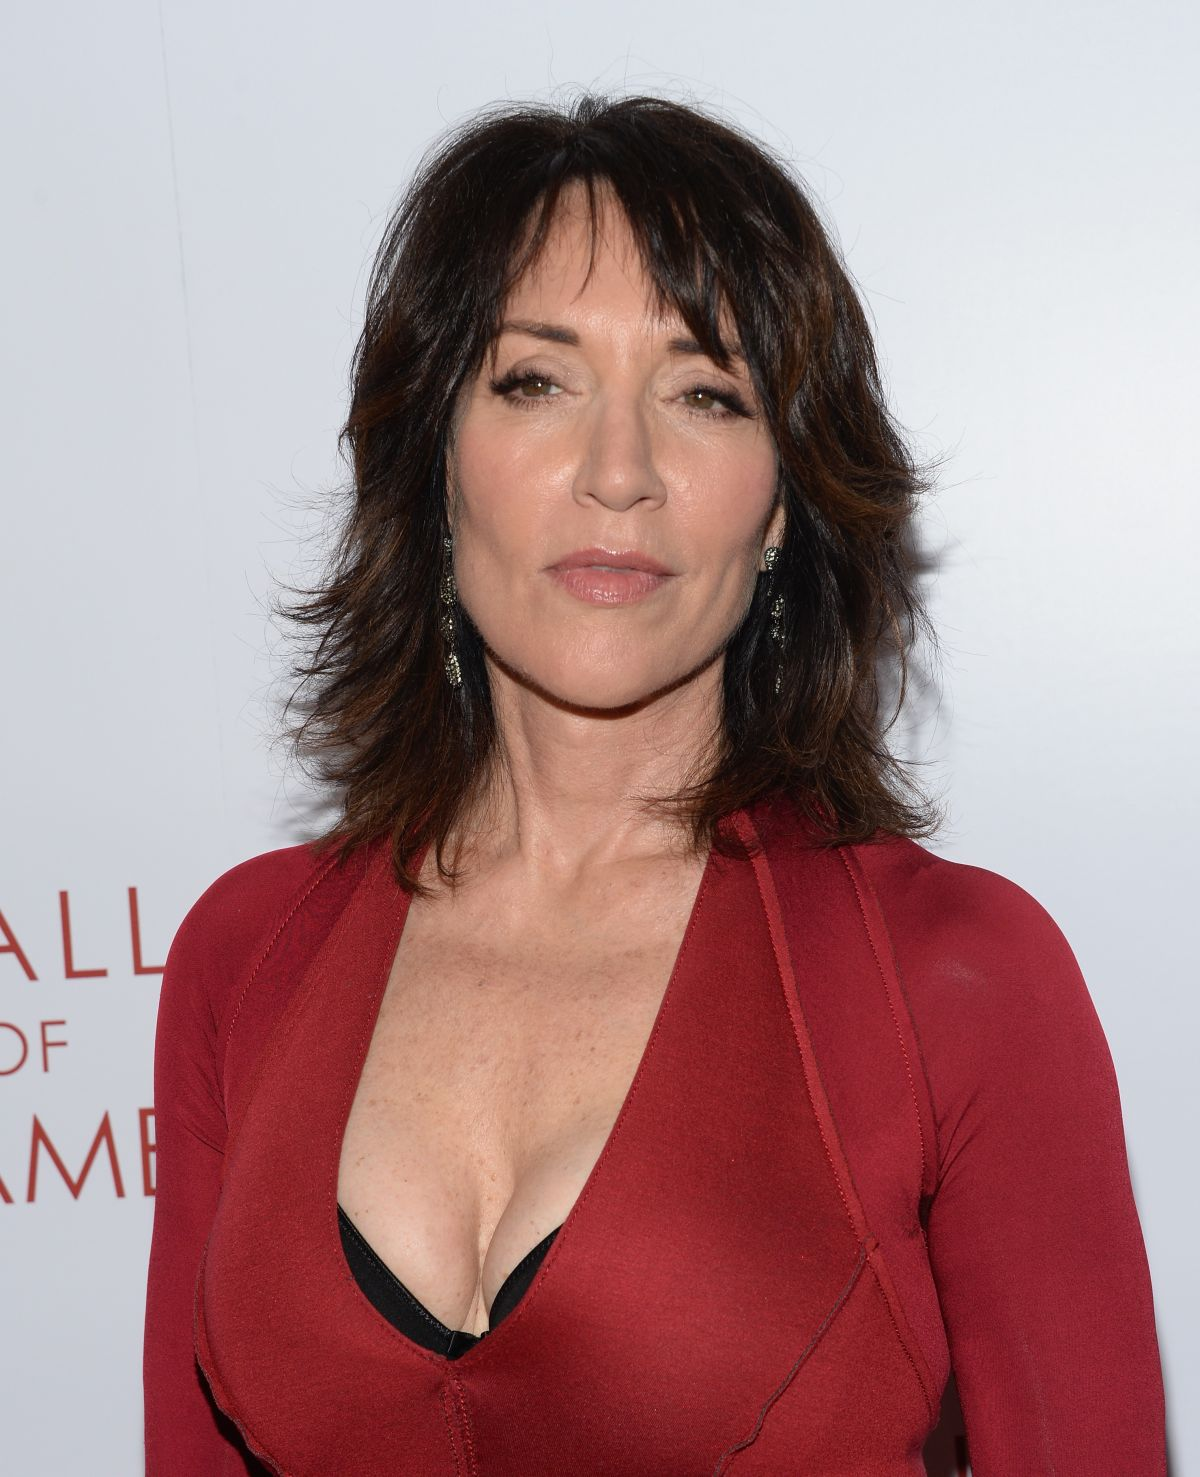 Katey Sagal earned a  million dollar salary, leaving the net worth at 30 million in 2017